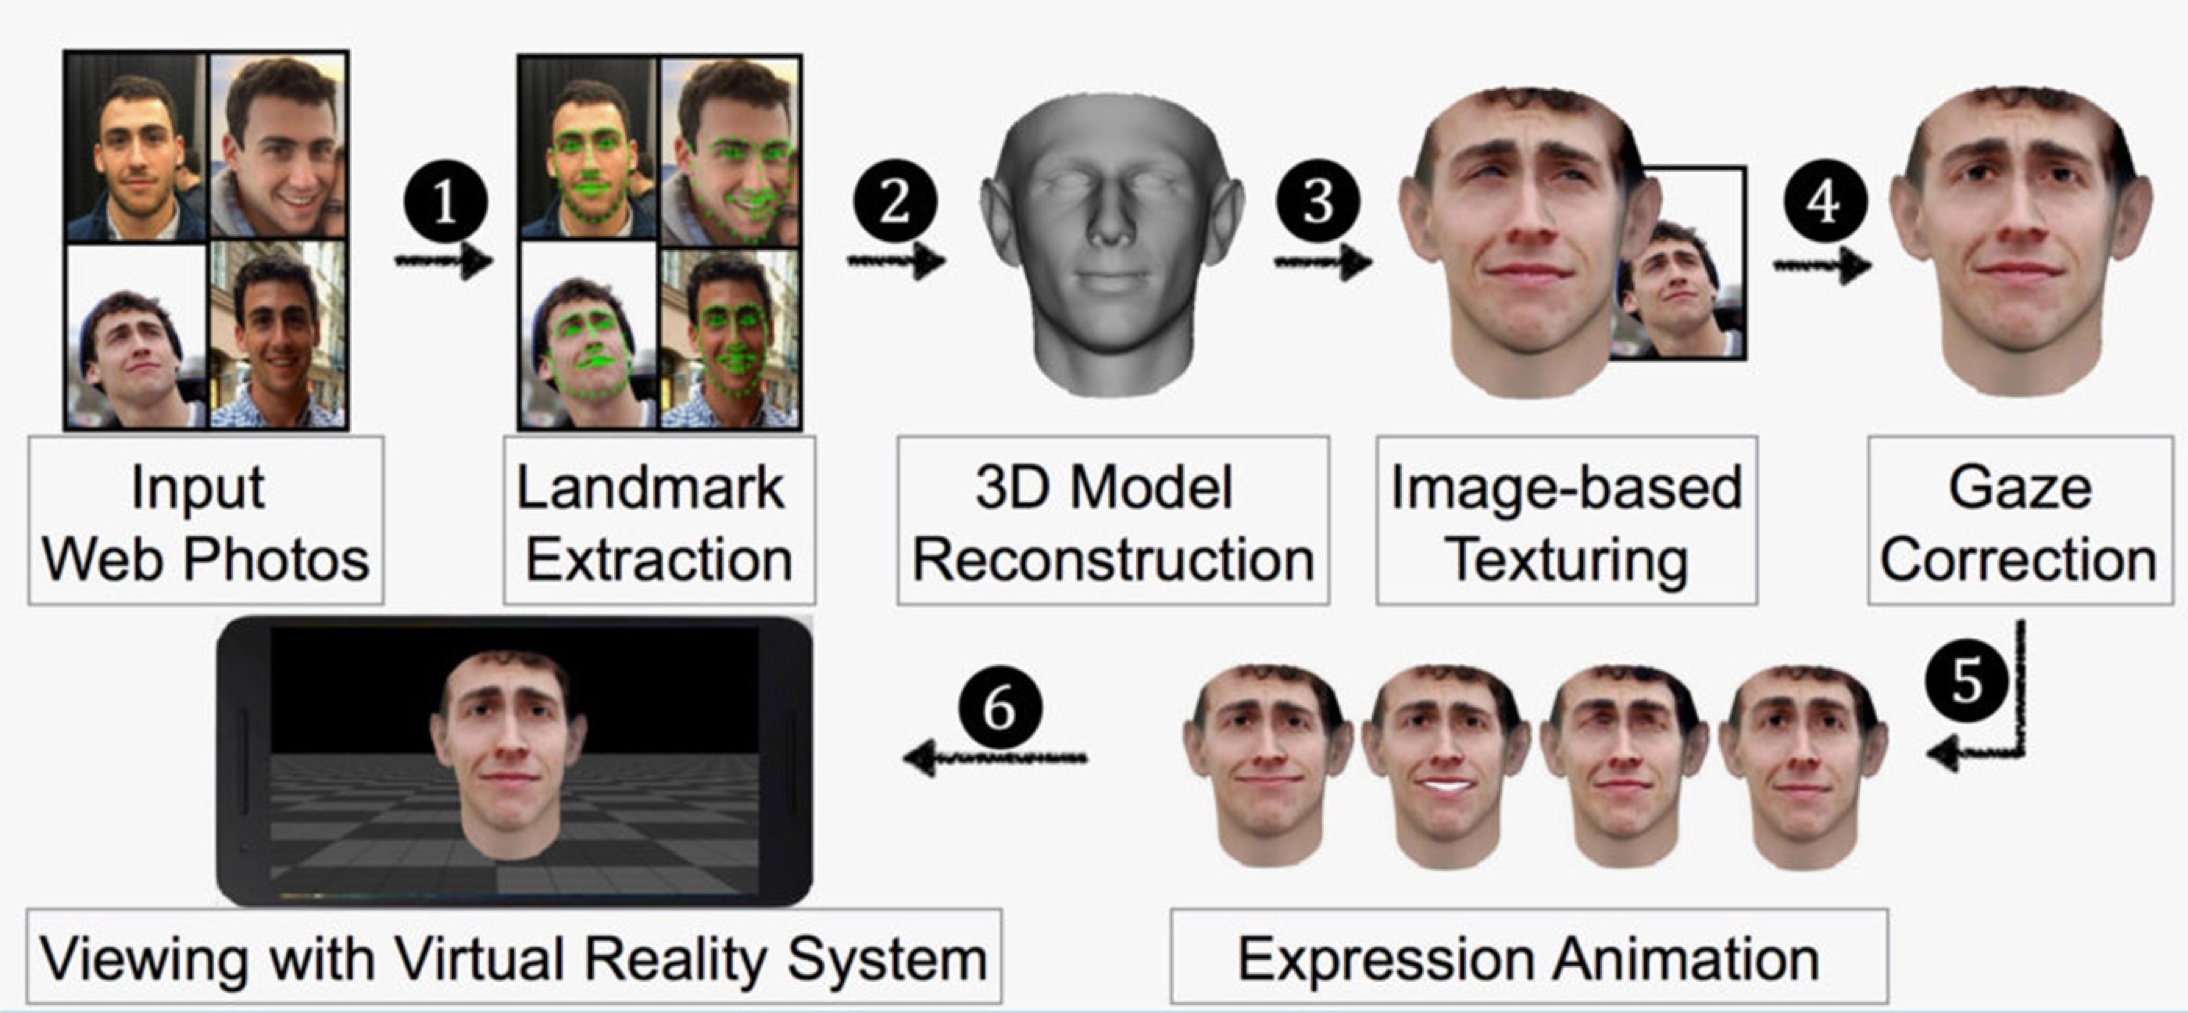 3d Models Based On Facebook Images Can Fool Facial